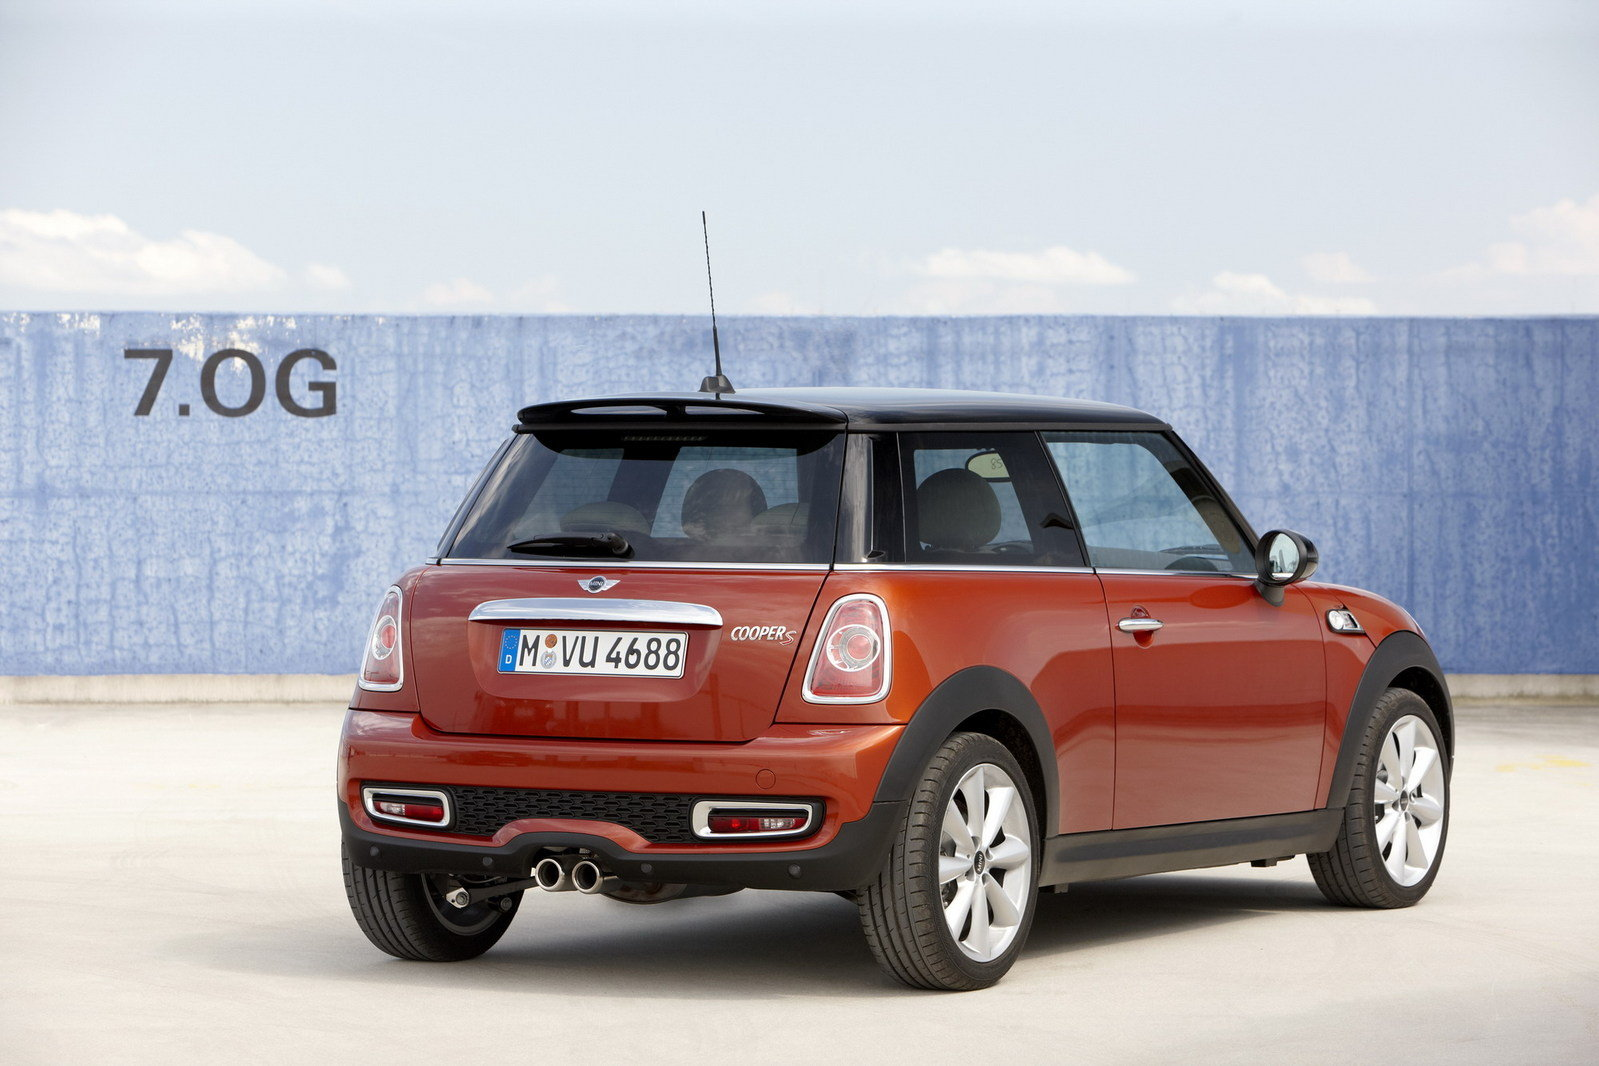 2011 mini cooper s picture 367270 car review top speed. Black Bedroom Furniture Sets. Home Design Ideas